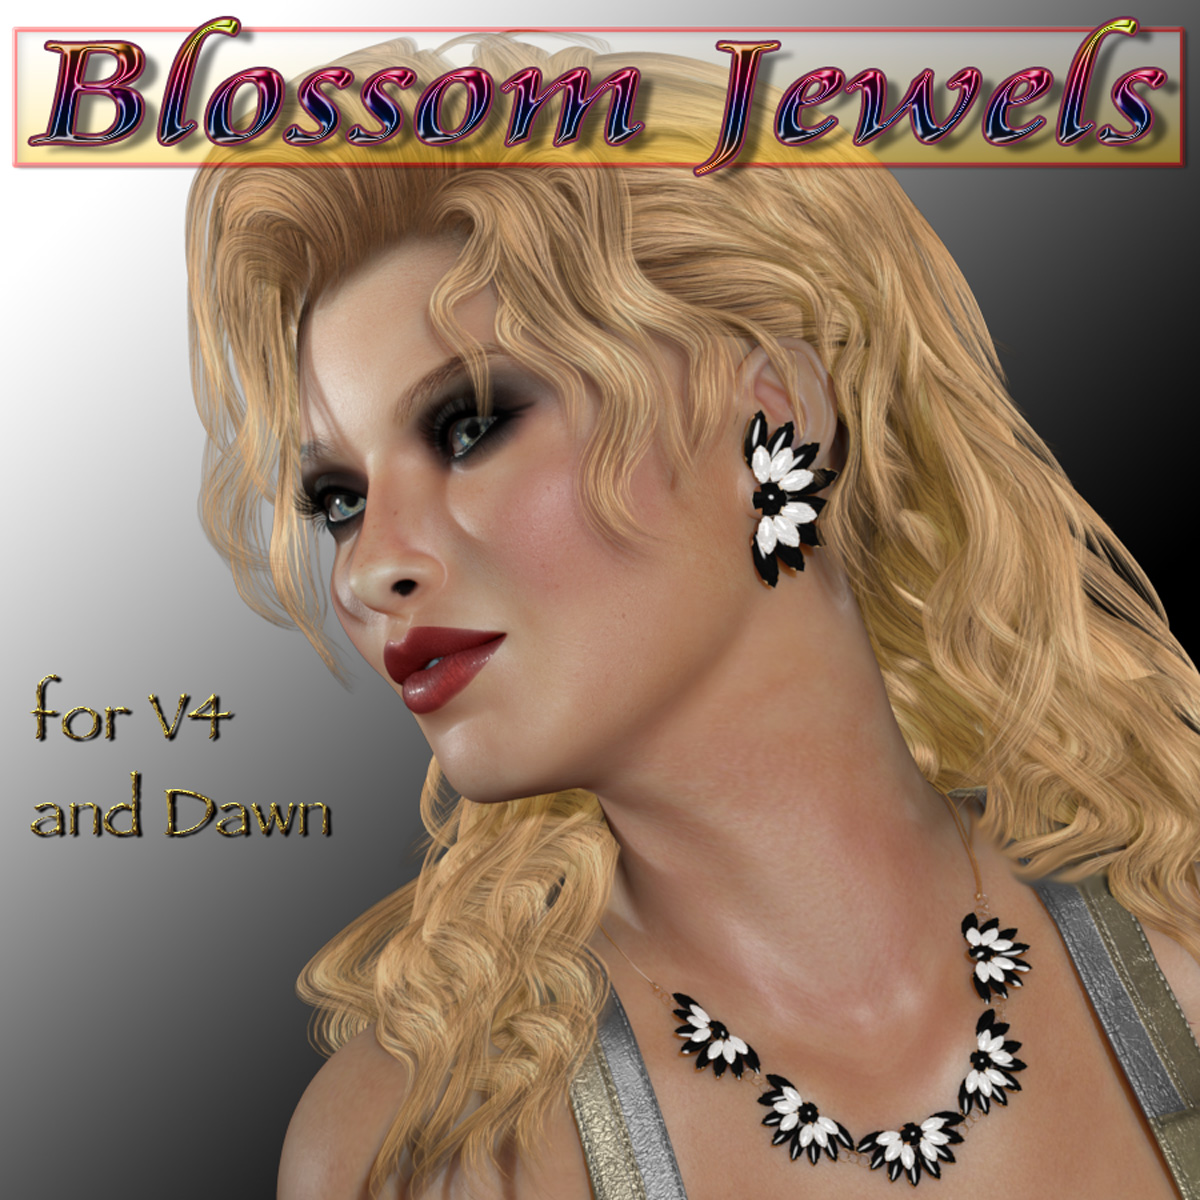 Blossom Jewels for V4 and Dawn